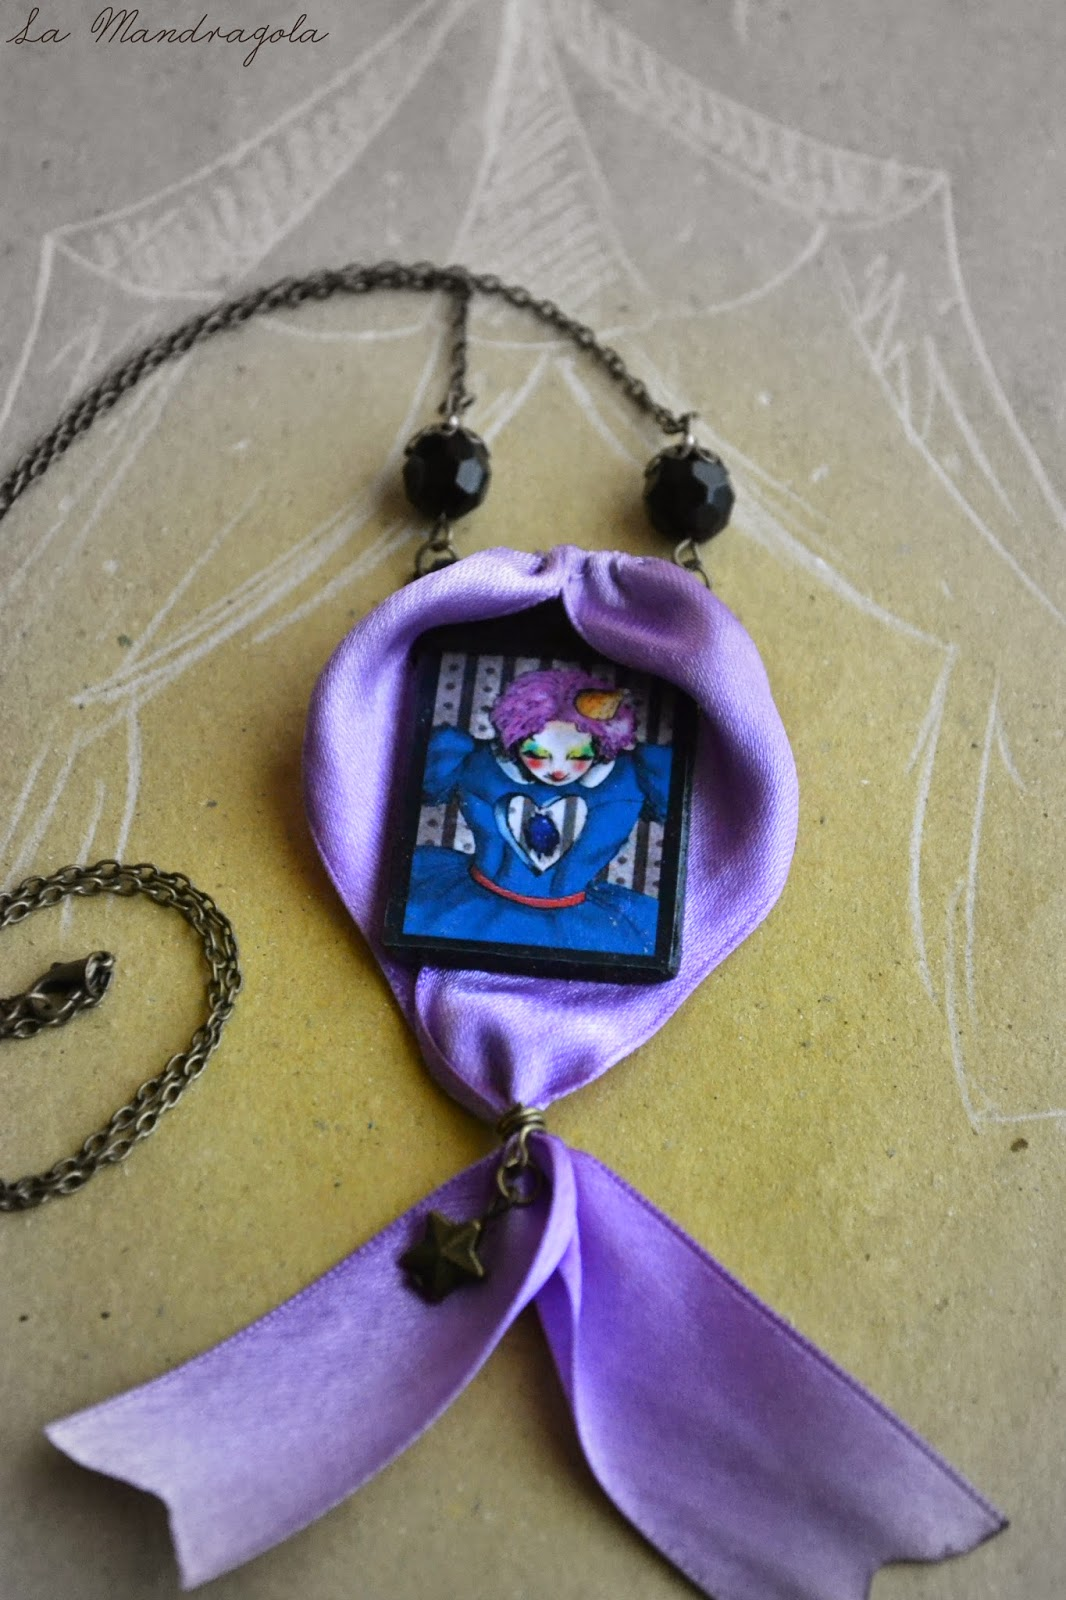 Night Circus - clown - freak show - necklace - moony -  la mandragola - Flavia Luglioli - illustration - victorian - etsy - circus - carnival - carousel